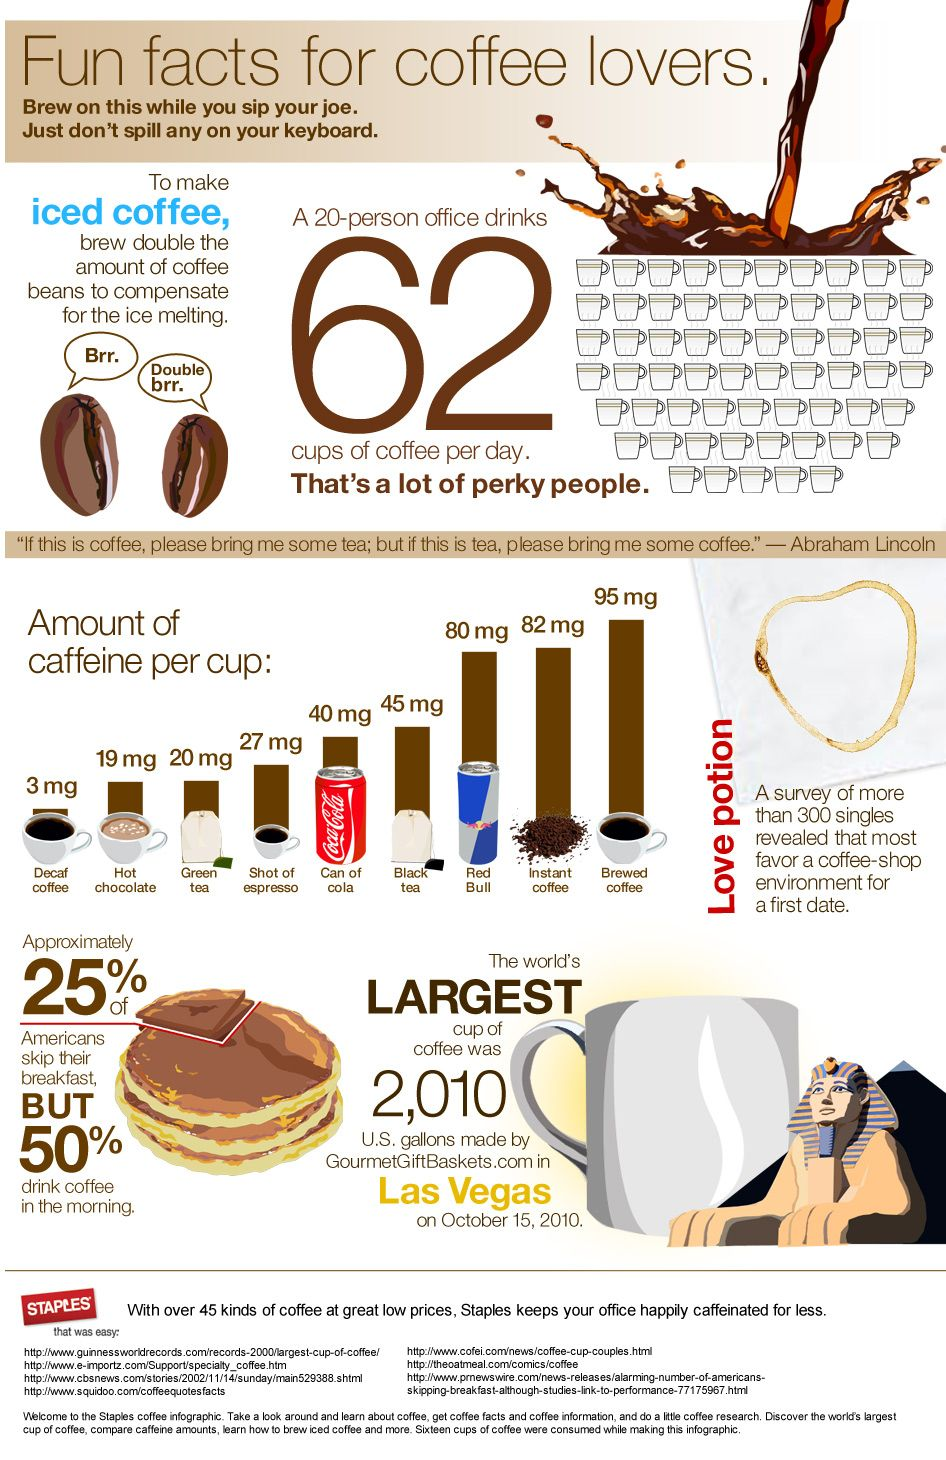 A coffee infographic. One shortcoming is that it doesn't proclaim Colombian as the best coffee. I guess everybody knows that anyway.